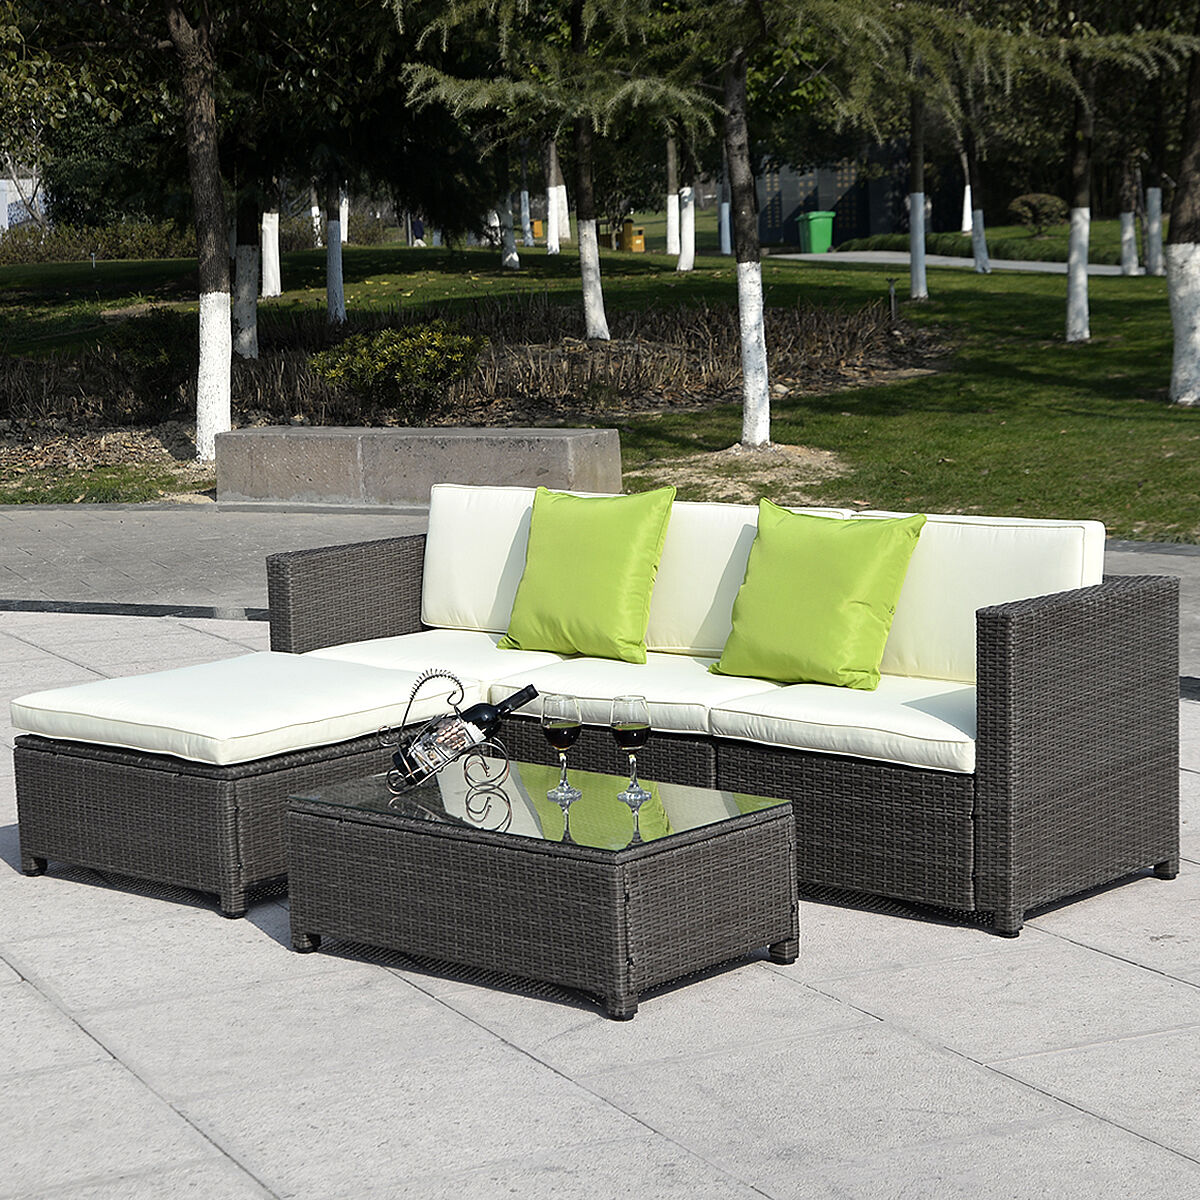 Rattan Sofa Costway Outdoor Patio 5pc Furniture Sectional Pe Wicker Rattan Sofa Set Deck Couch Black Brown